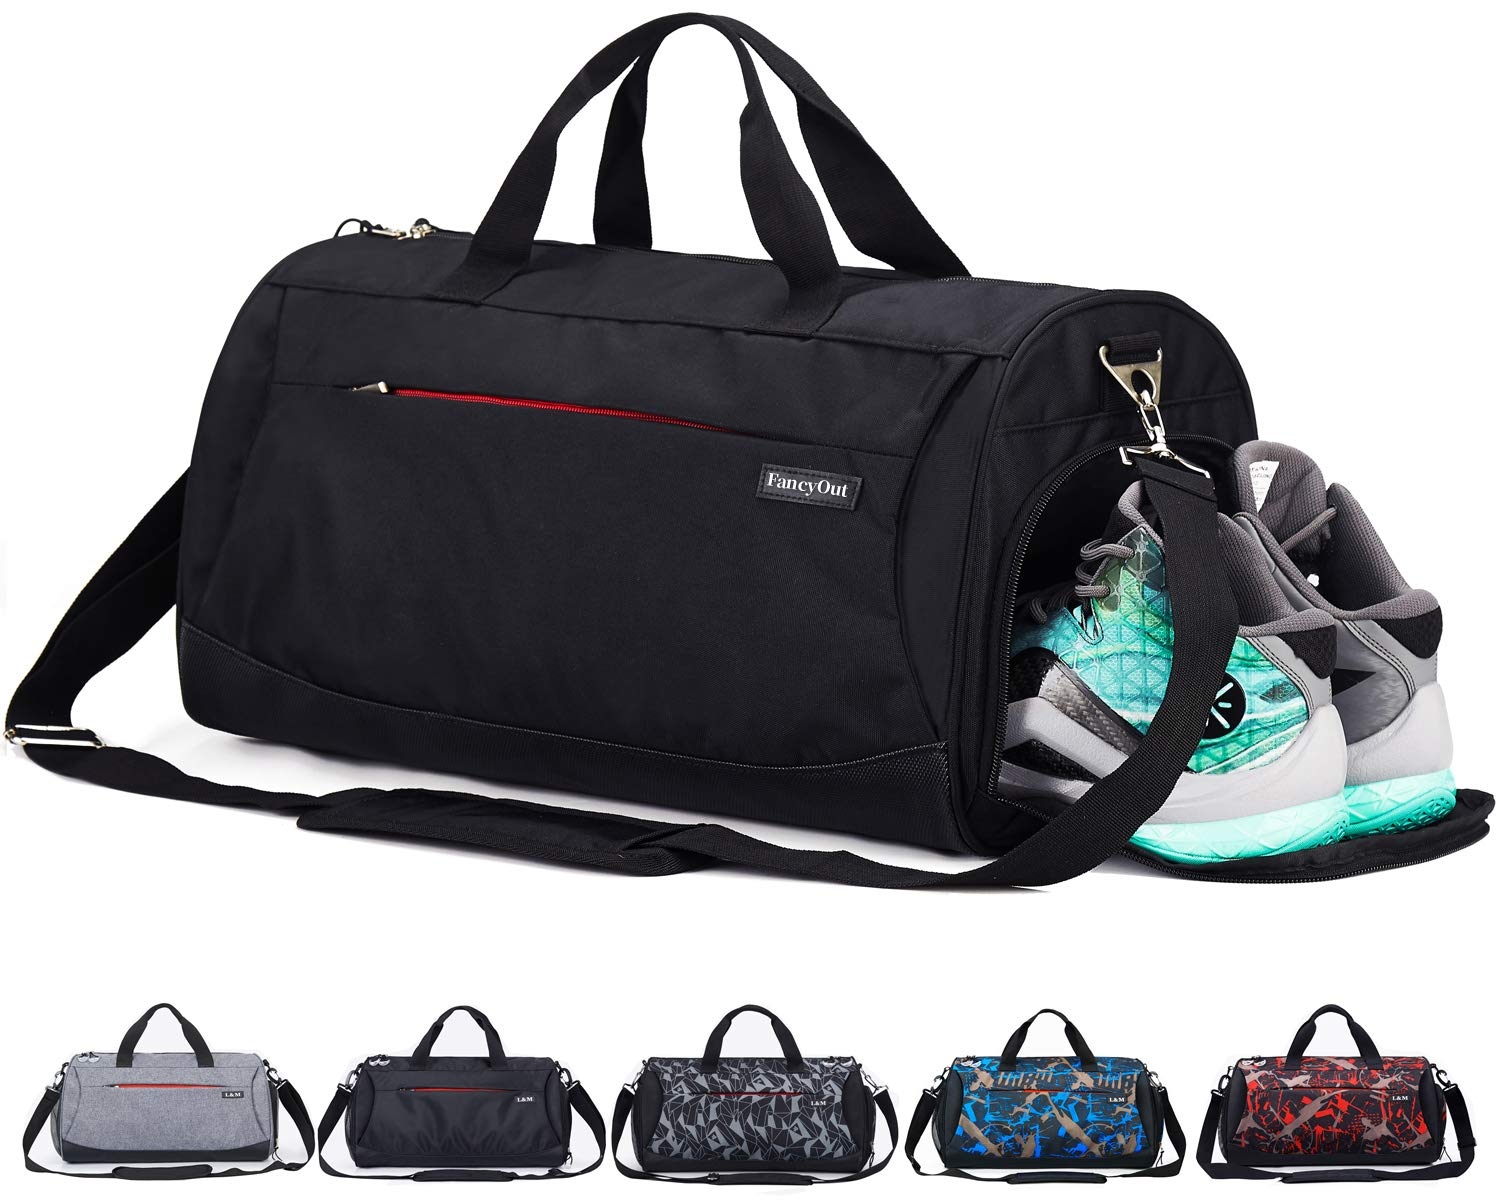 5c163eee8503 CoCoMall Sports Gym Bag with Shoes Compartment and Wet Pocket ...